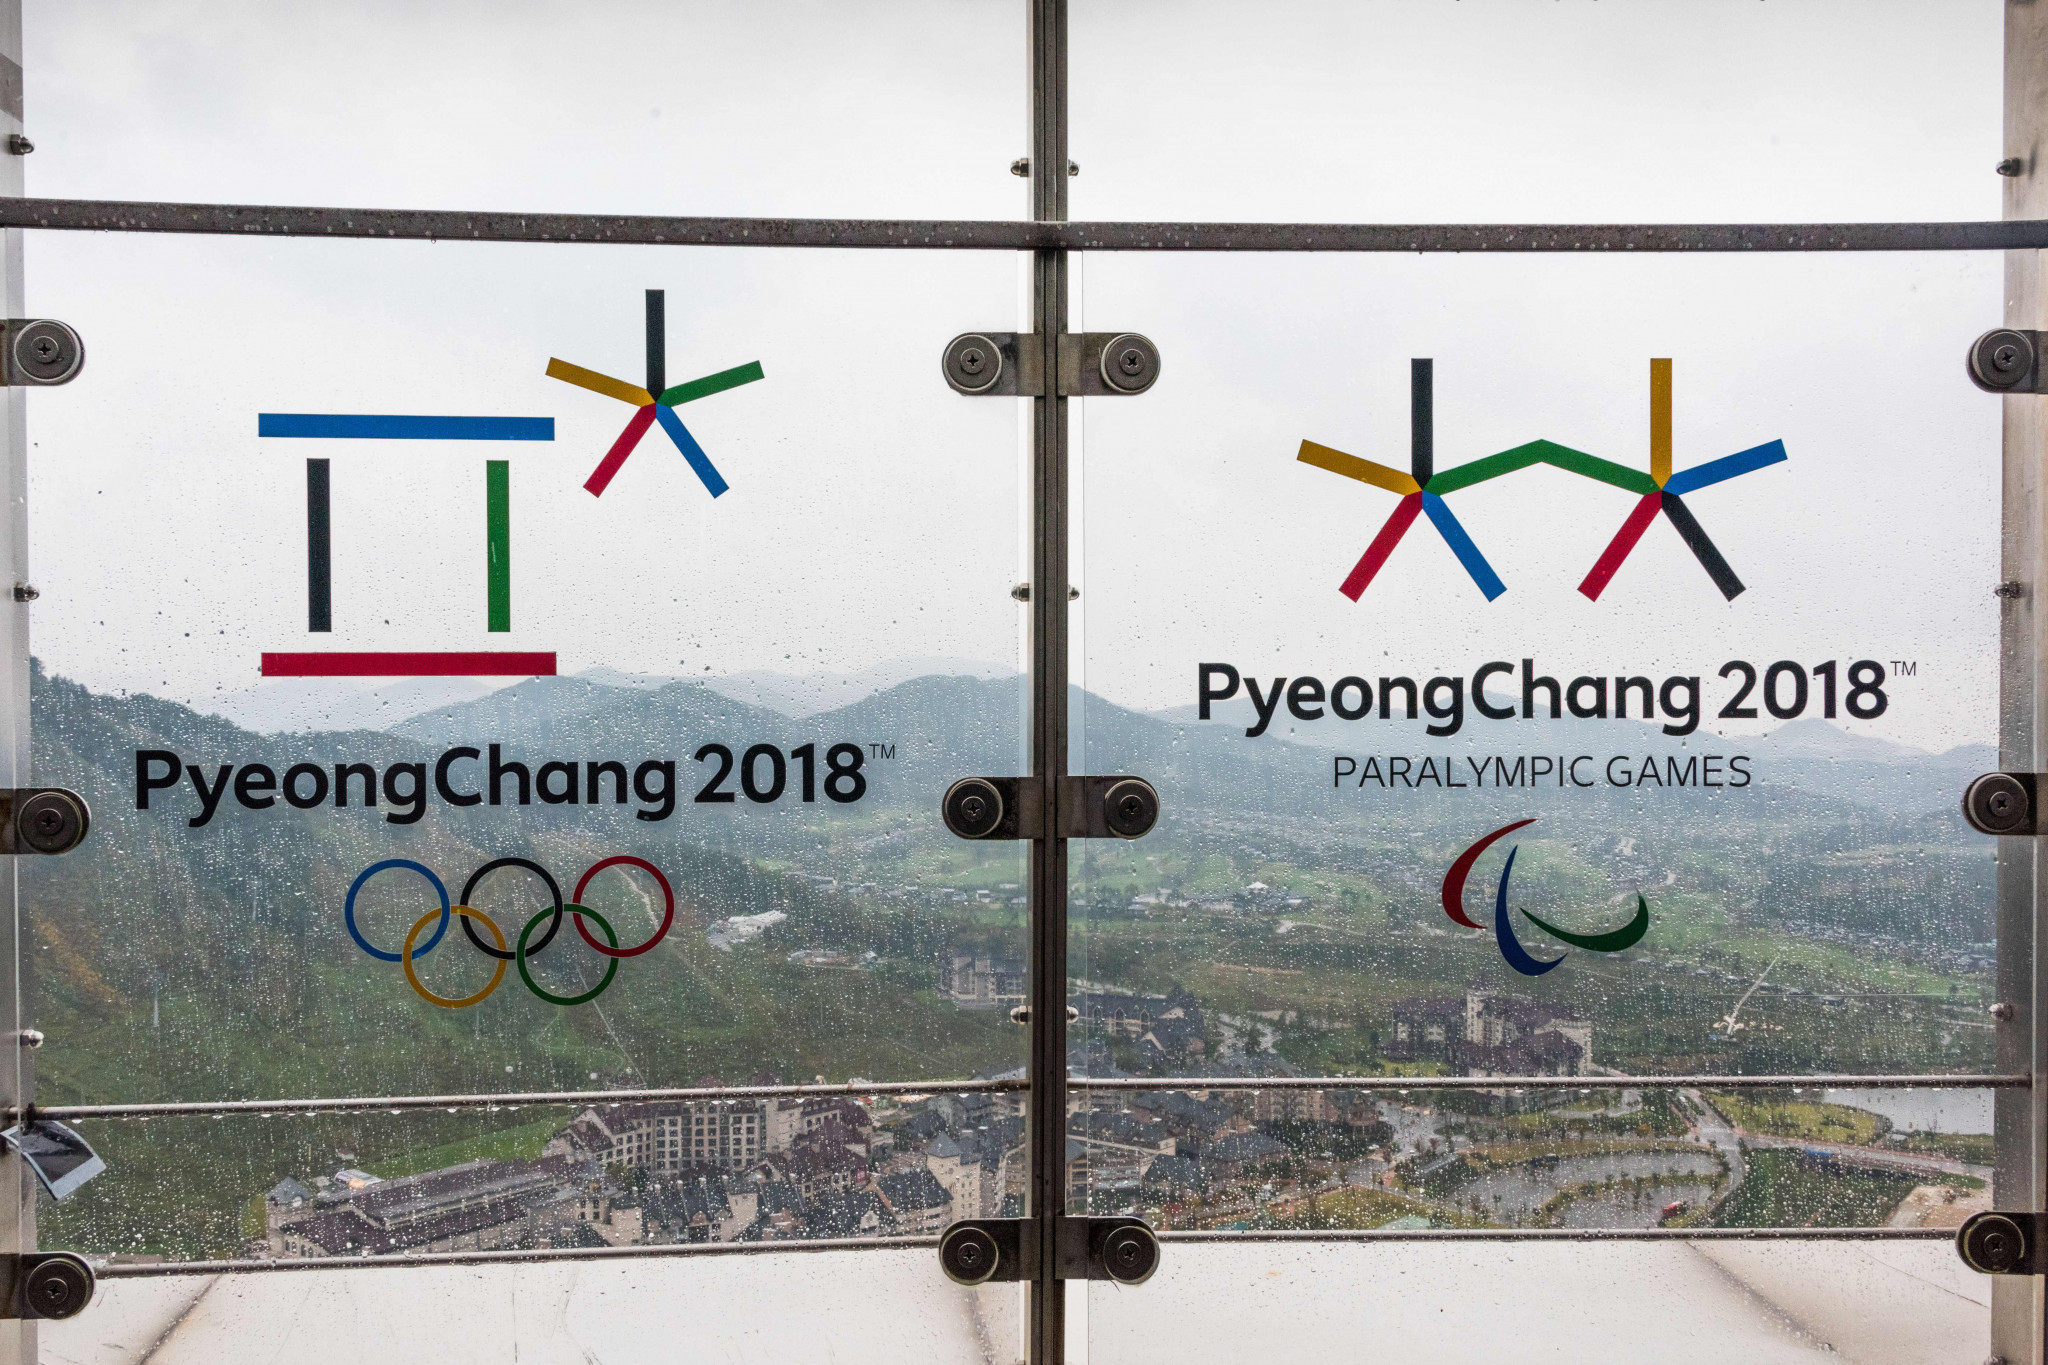 More than 50 per cent of tickets have now been sold for this year's Winter Paralympic Games in Pyeongchang ©Getty Images